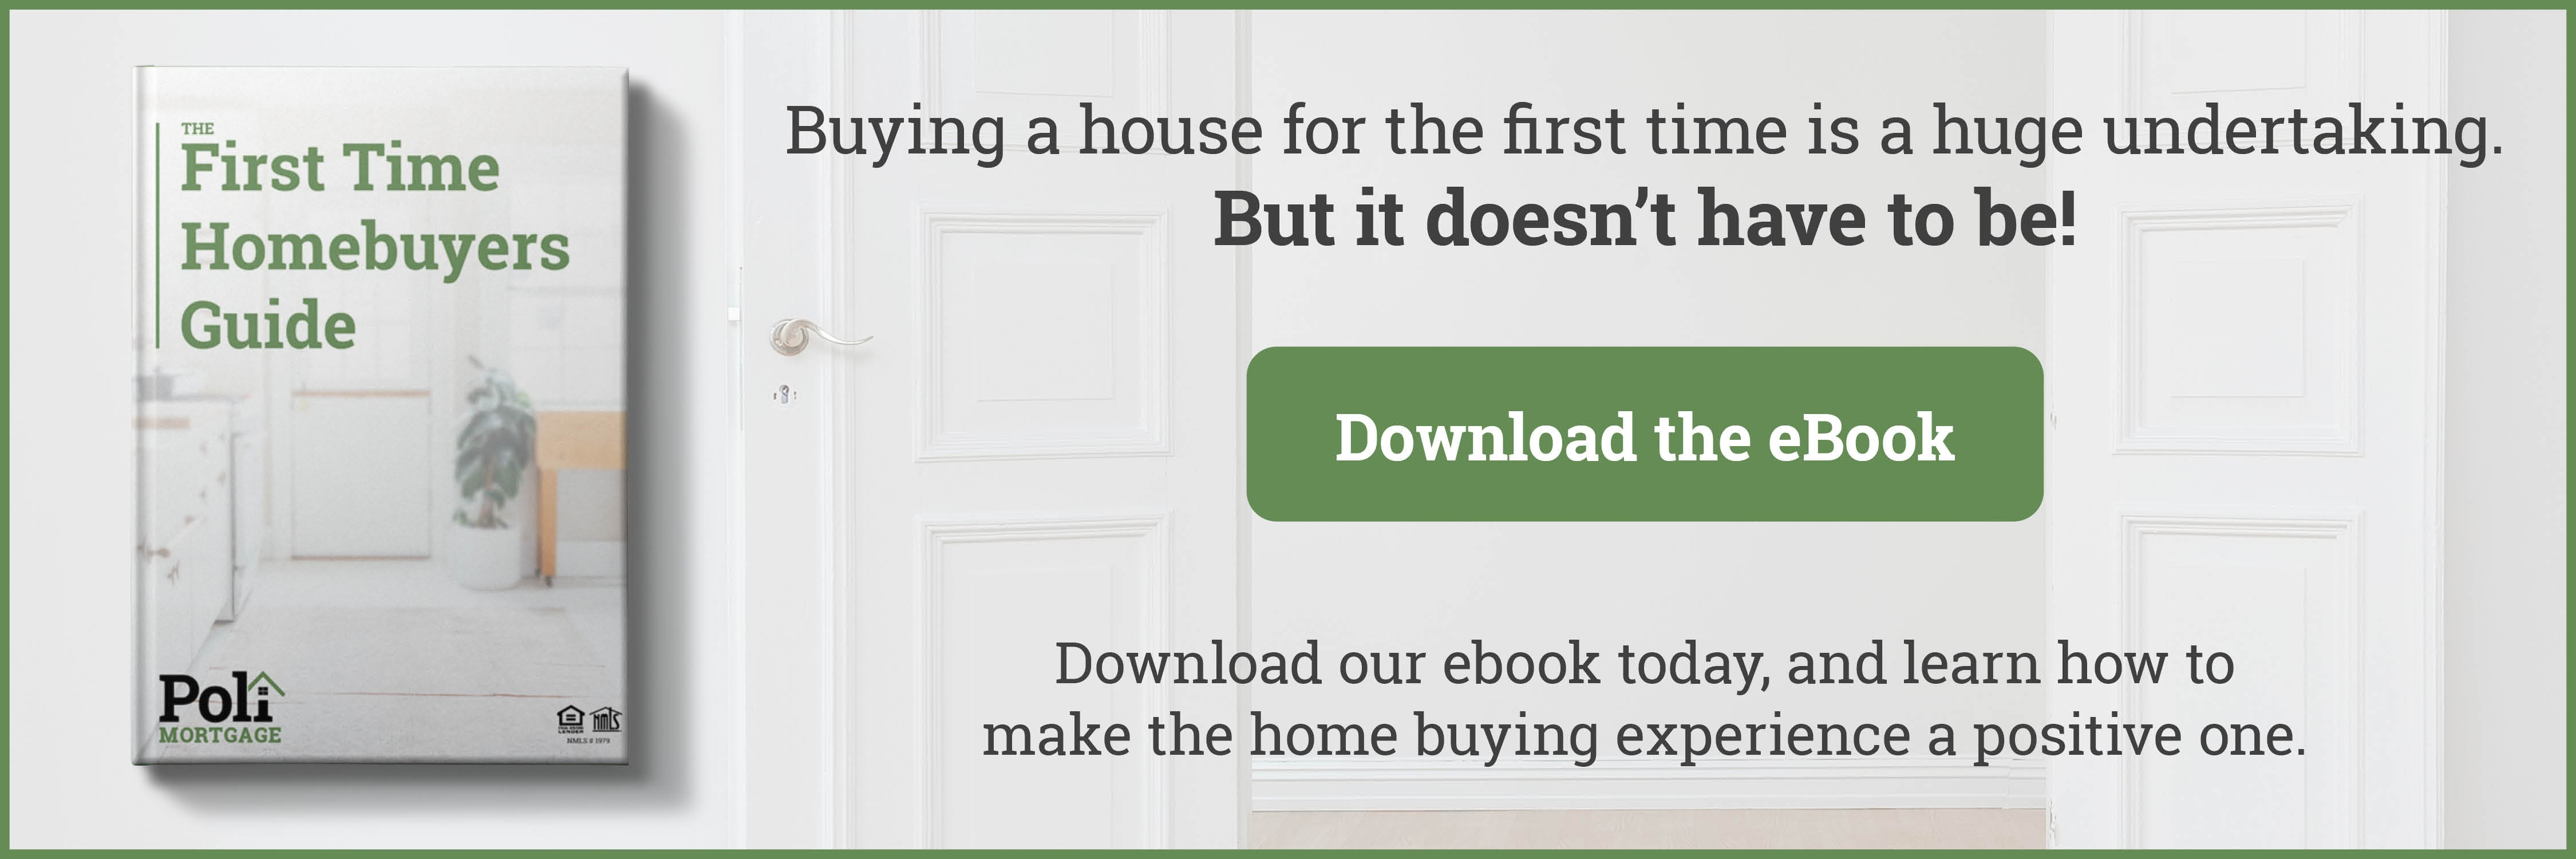 The First Time Homebuyers Guide